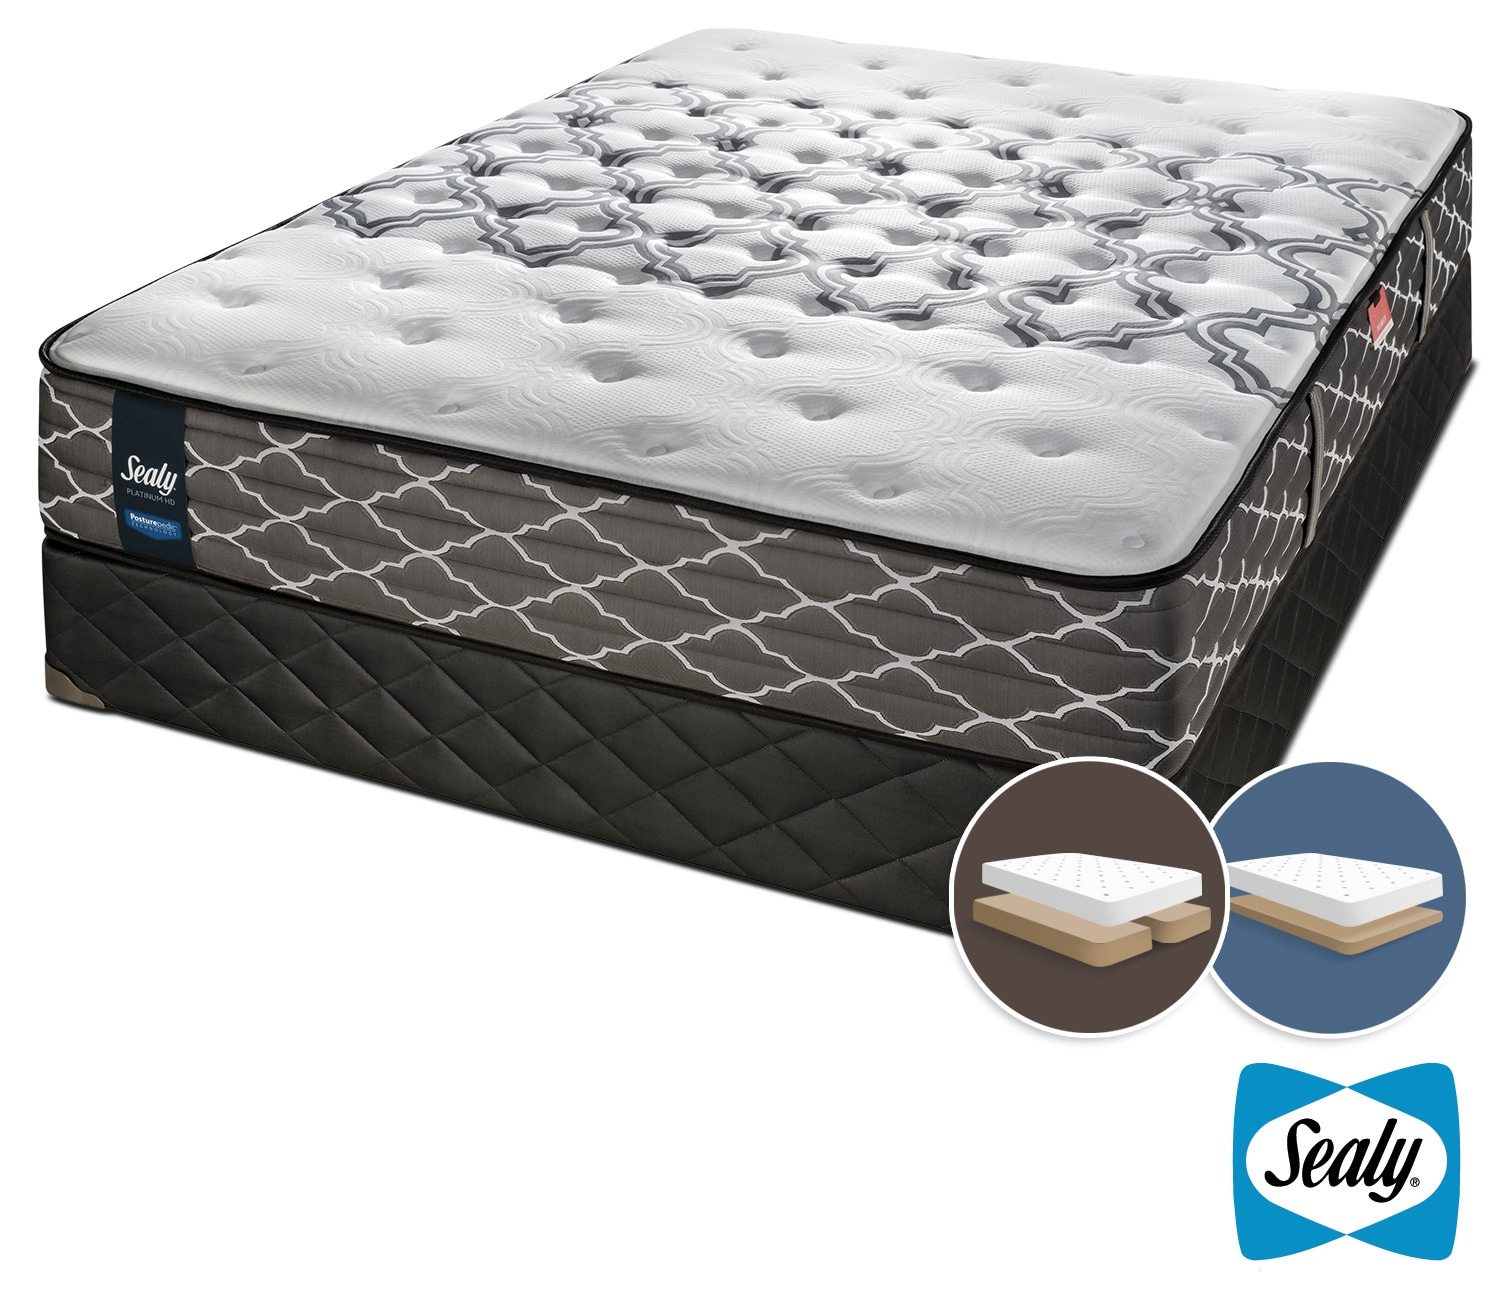 Sealy Late Night Hybrid Extra Firm King Mattress and Low-Profile Split Boxspring Set